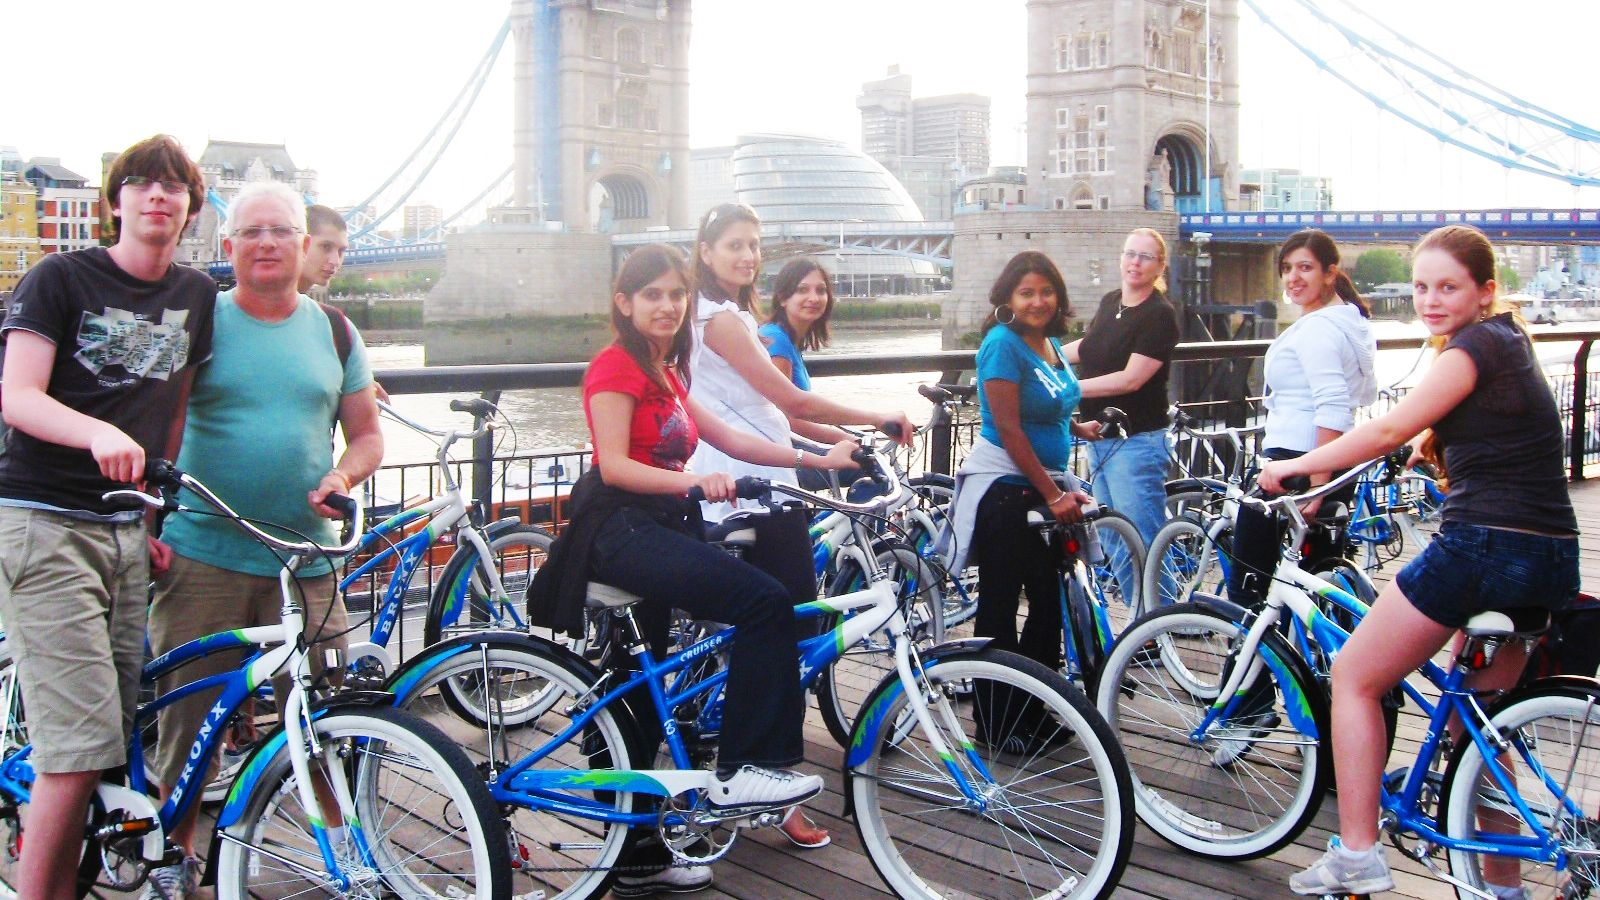 group of people on bicycles in front of London Bridge in London